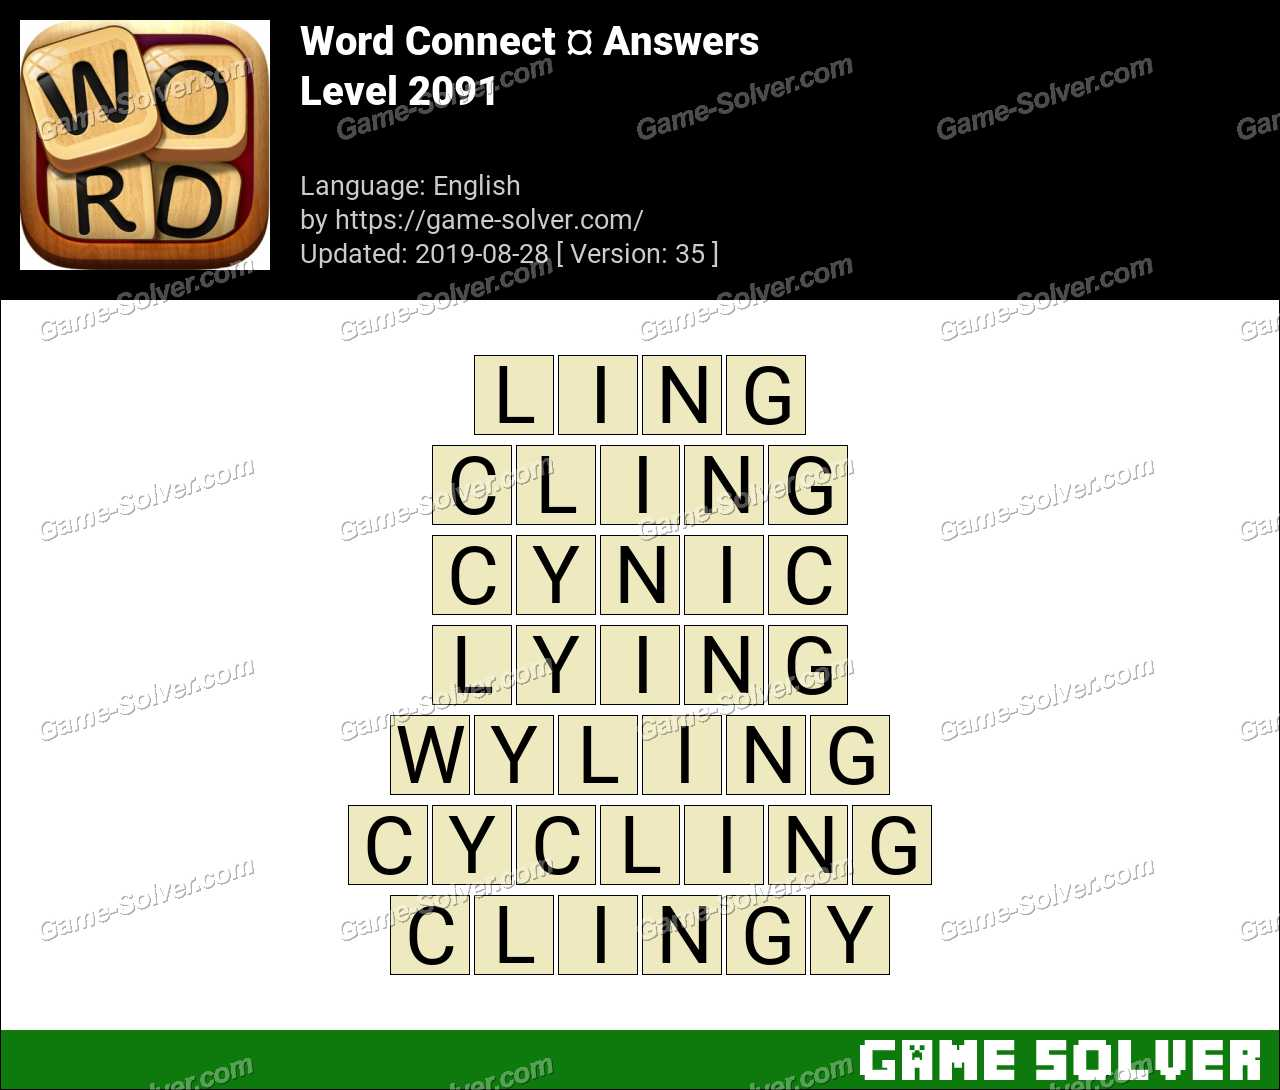 Word Connect Level 2091 Answers